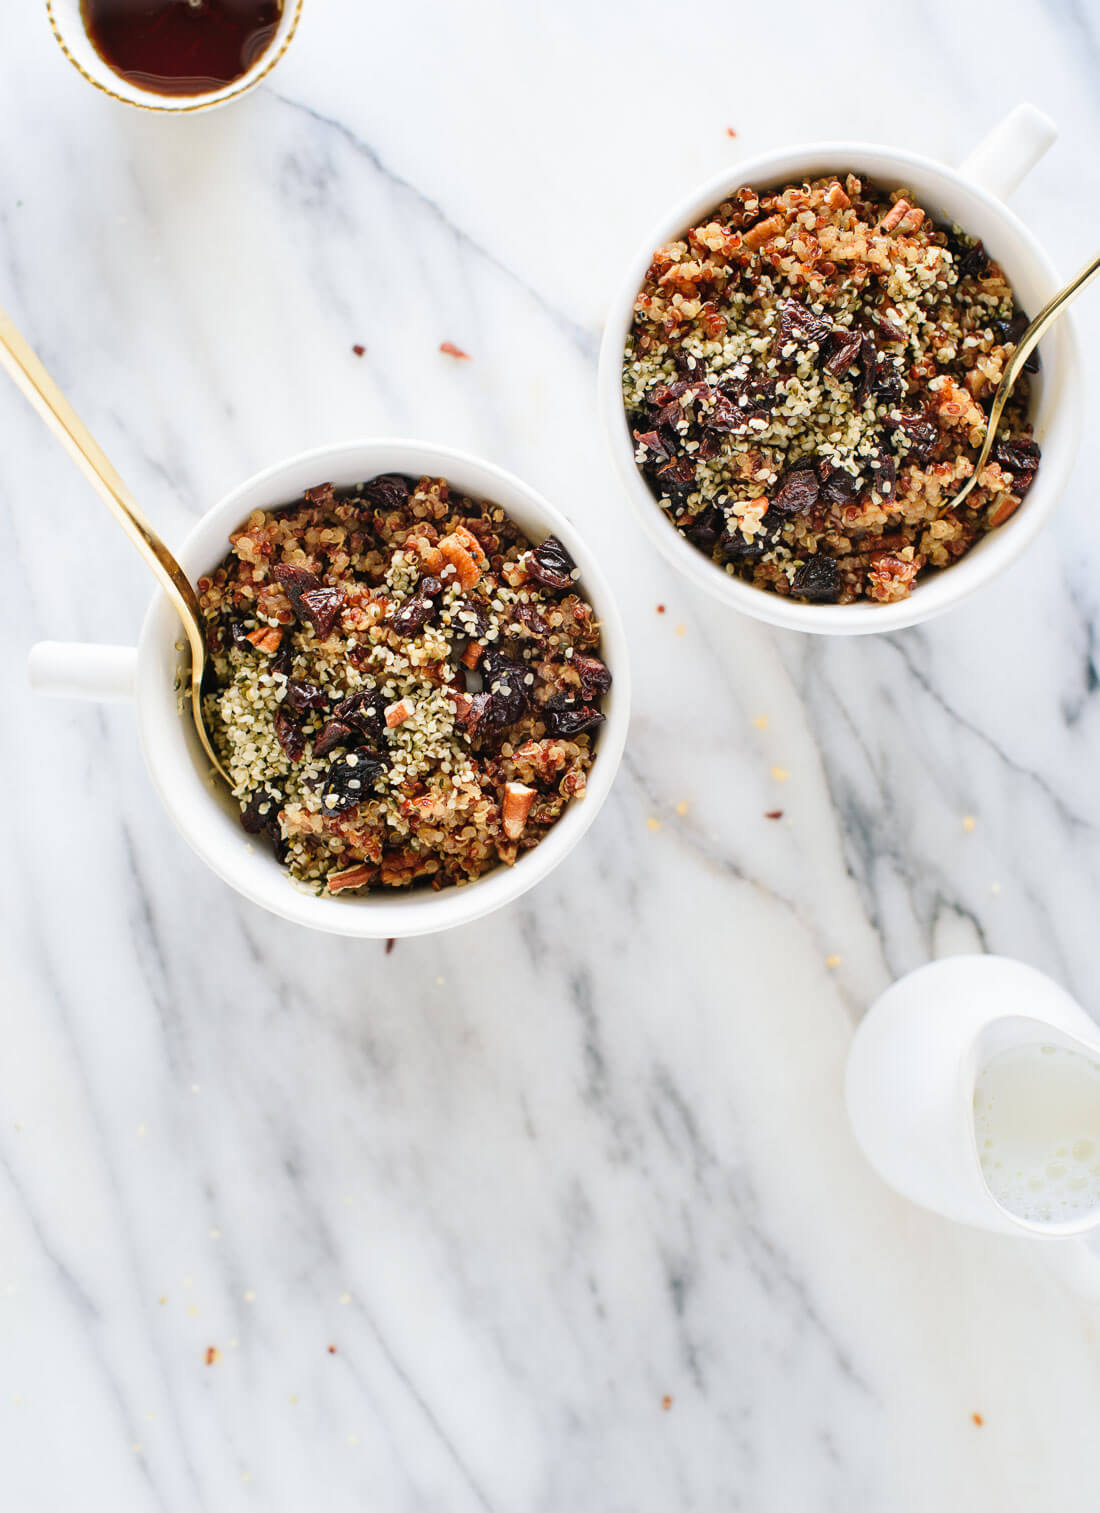 Epic breakfast quinoa featuring toasted pecans, coconut oil, cinnamon and dried cherries or cranberries - cookieandkate.com